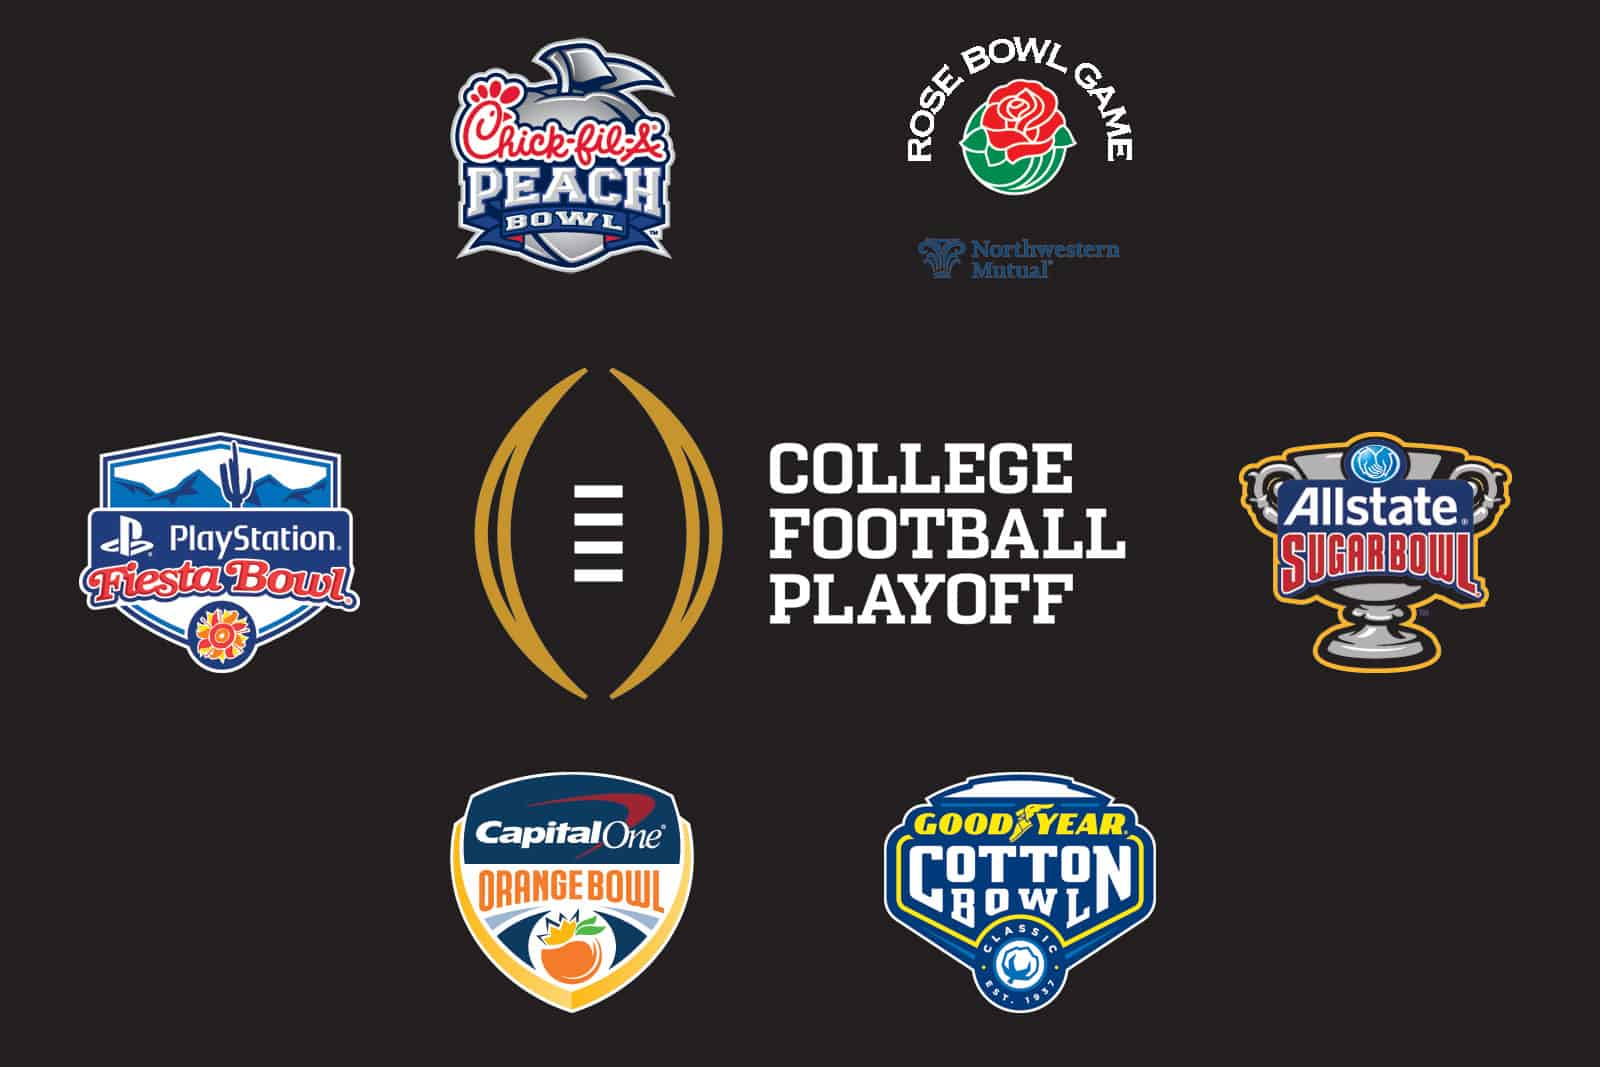 College Football Playoff: New Year's Six